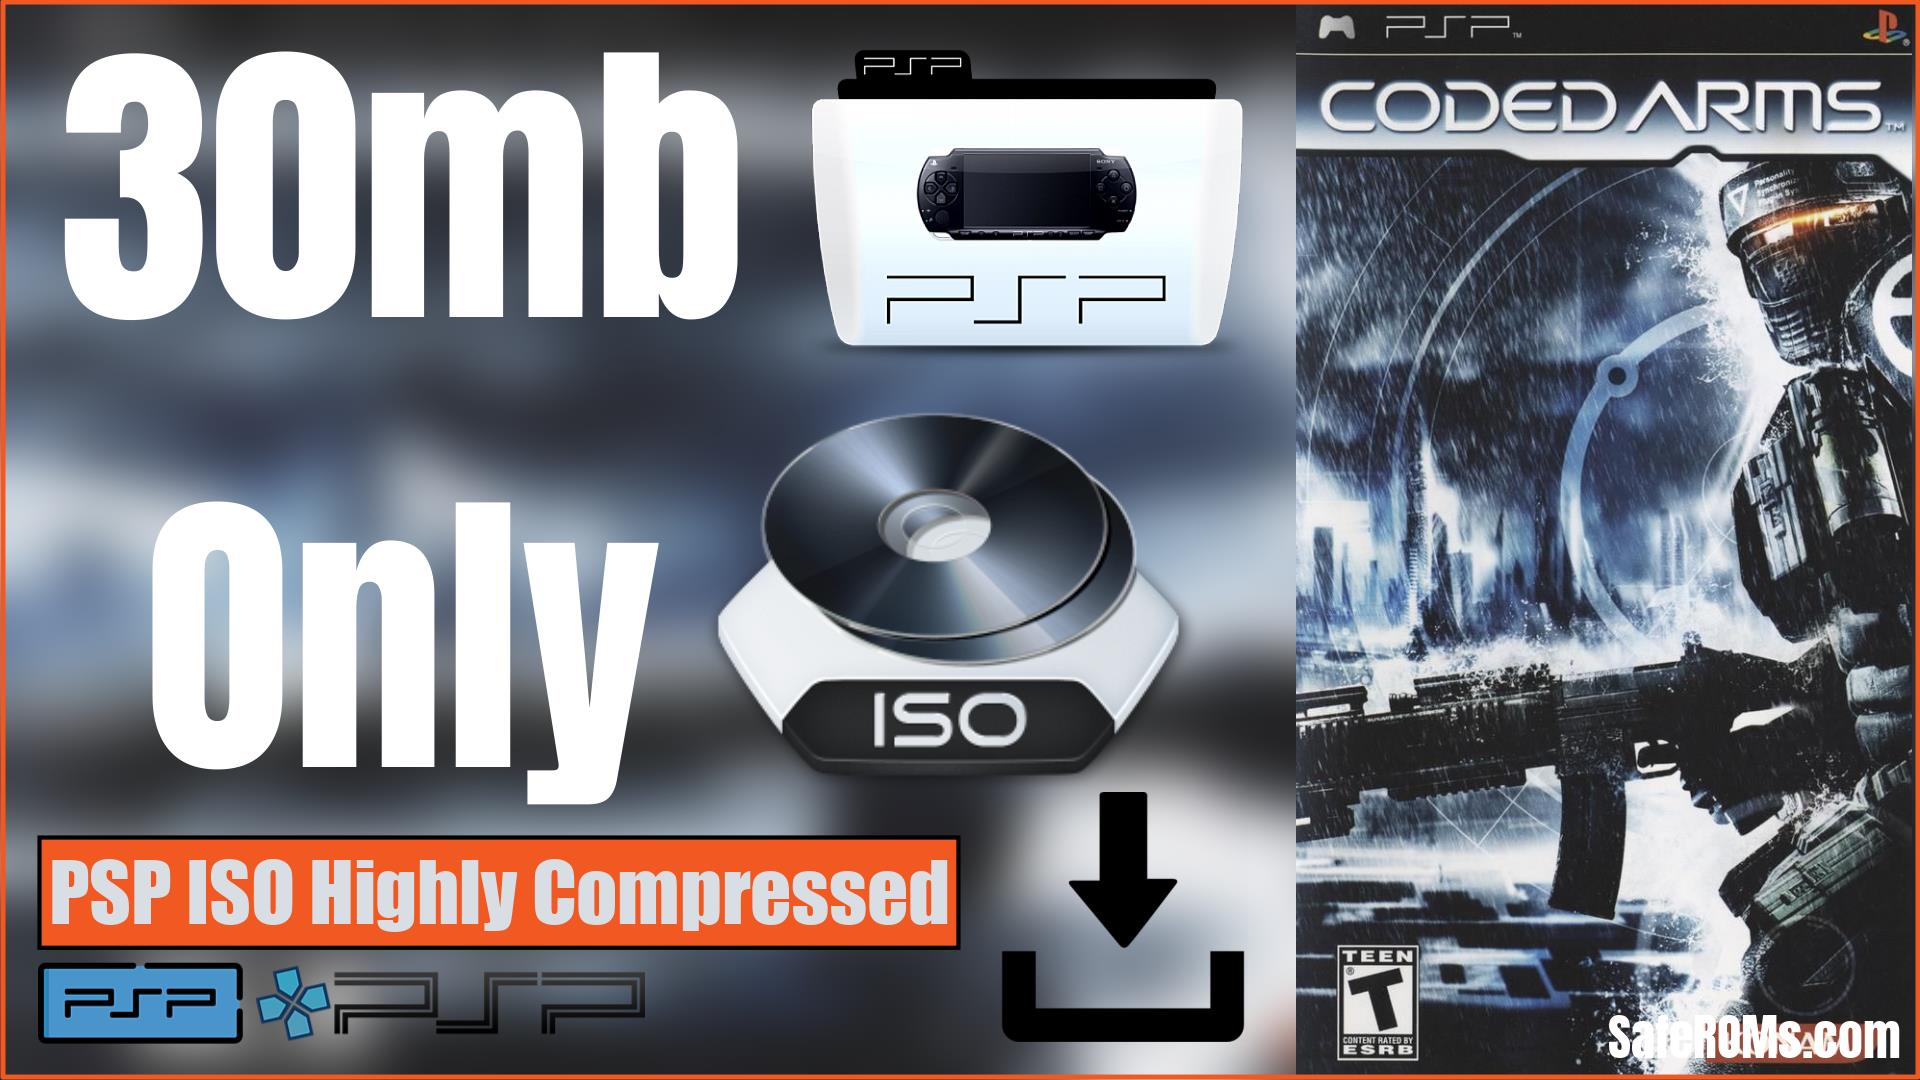 Coded Arms PSP ISO Highly Compressed Download